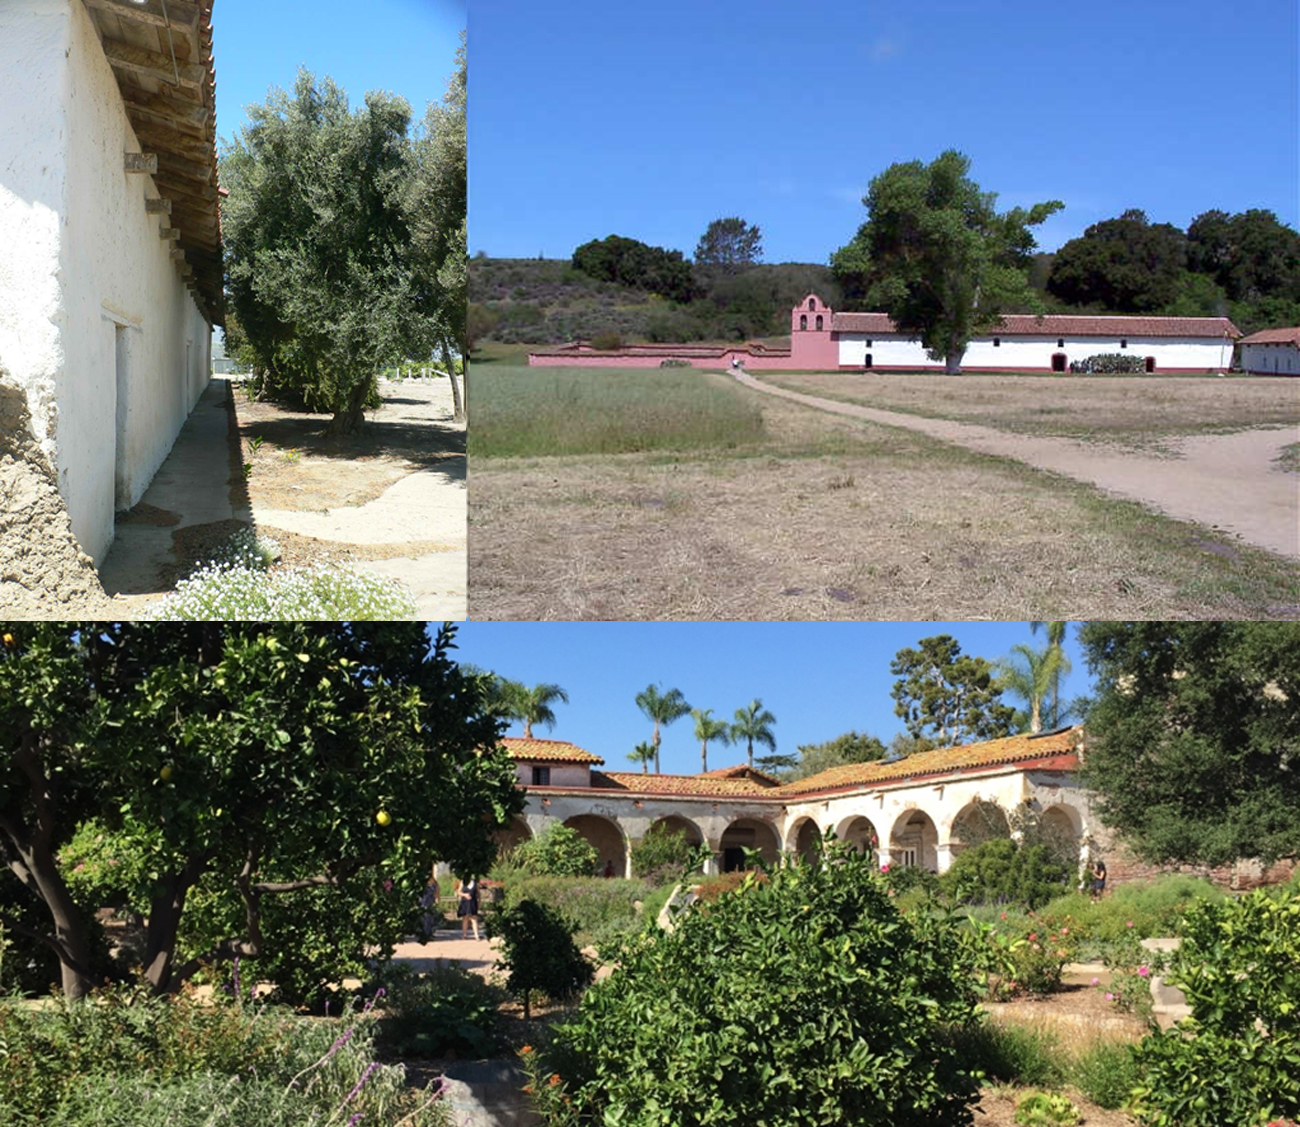 It is no coincidence that the Spaniards were attracted to California. The landscape is similar. The surrounding landscapes of the missions, both natural and cultivated, are as much a part of their architecture as are the buildings.